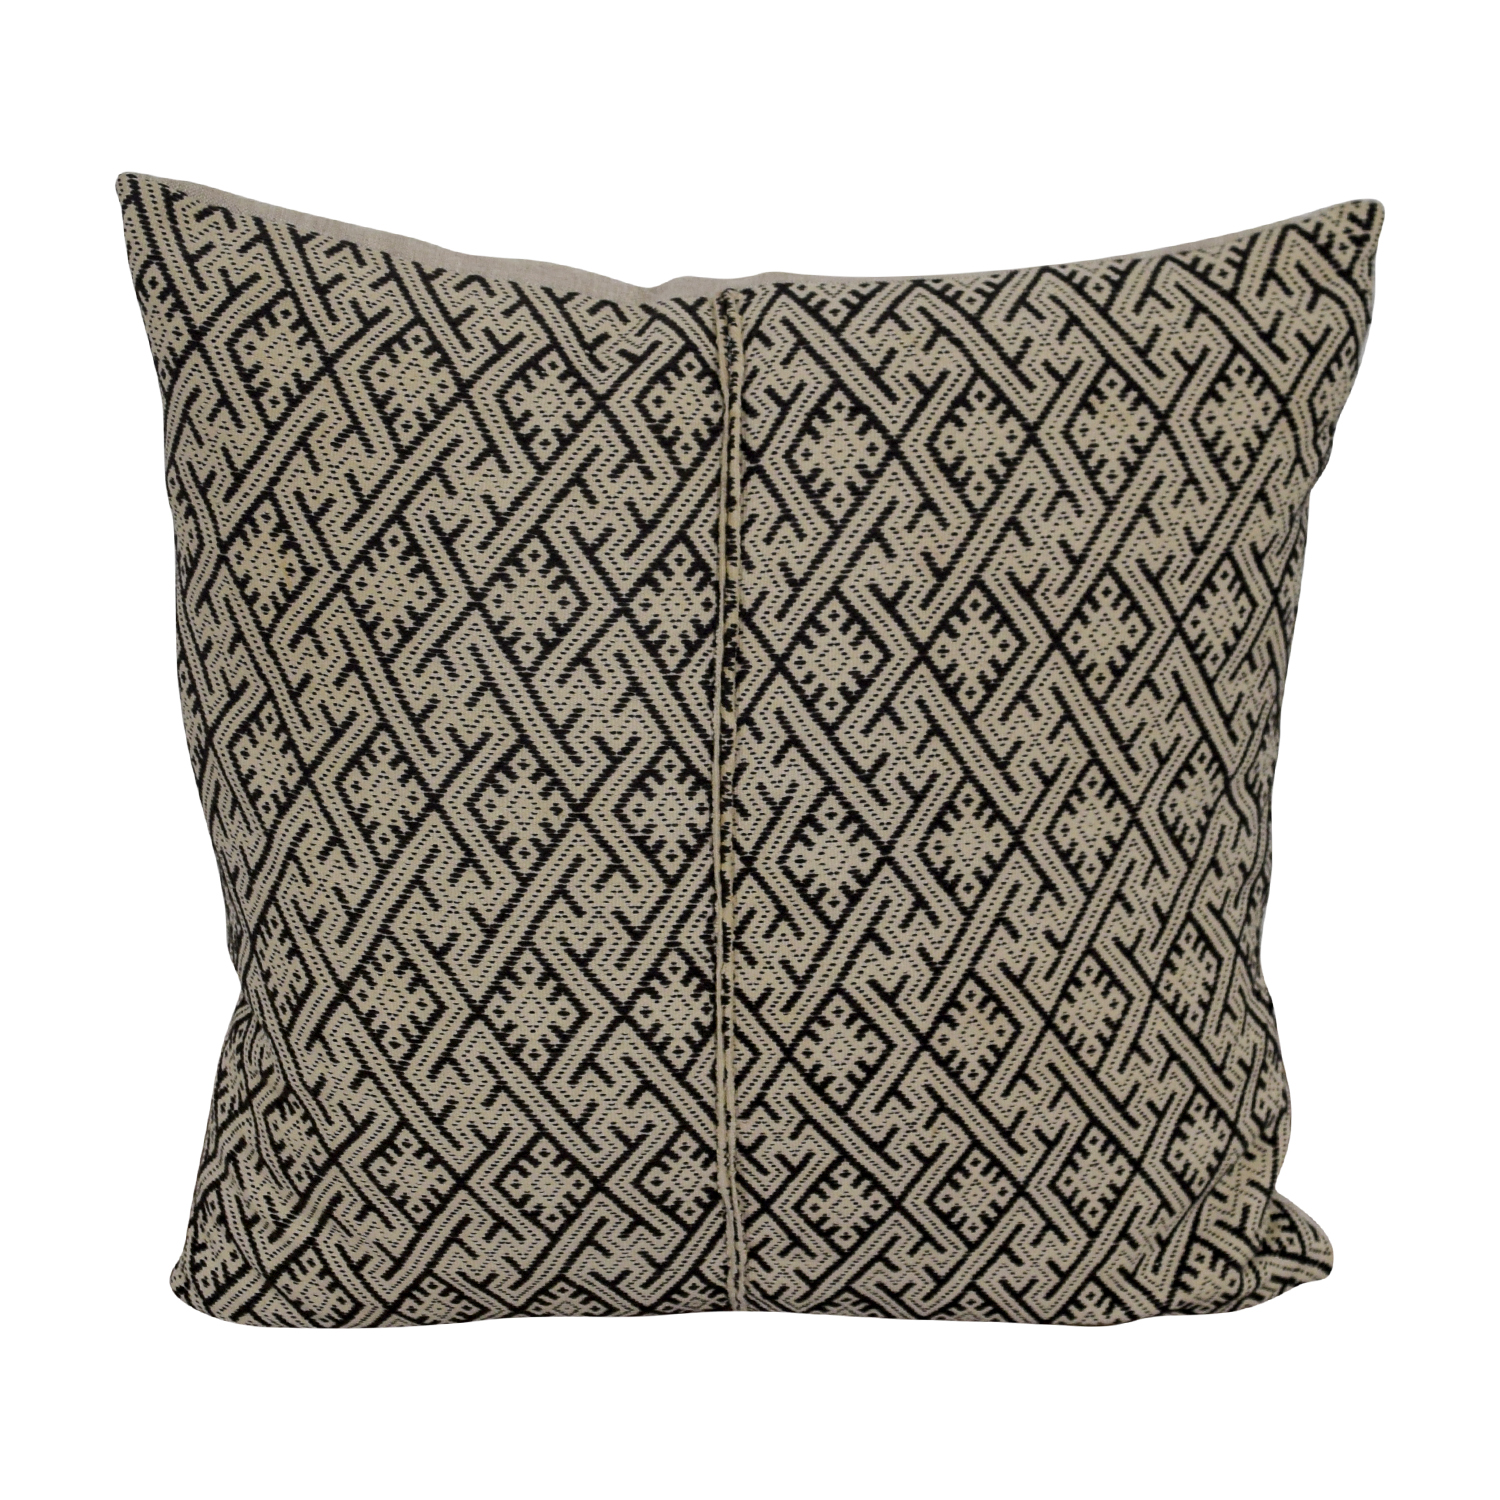 Etsy Vintage Beige and Black Toss Pillow sale